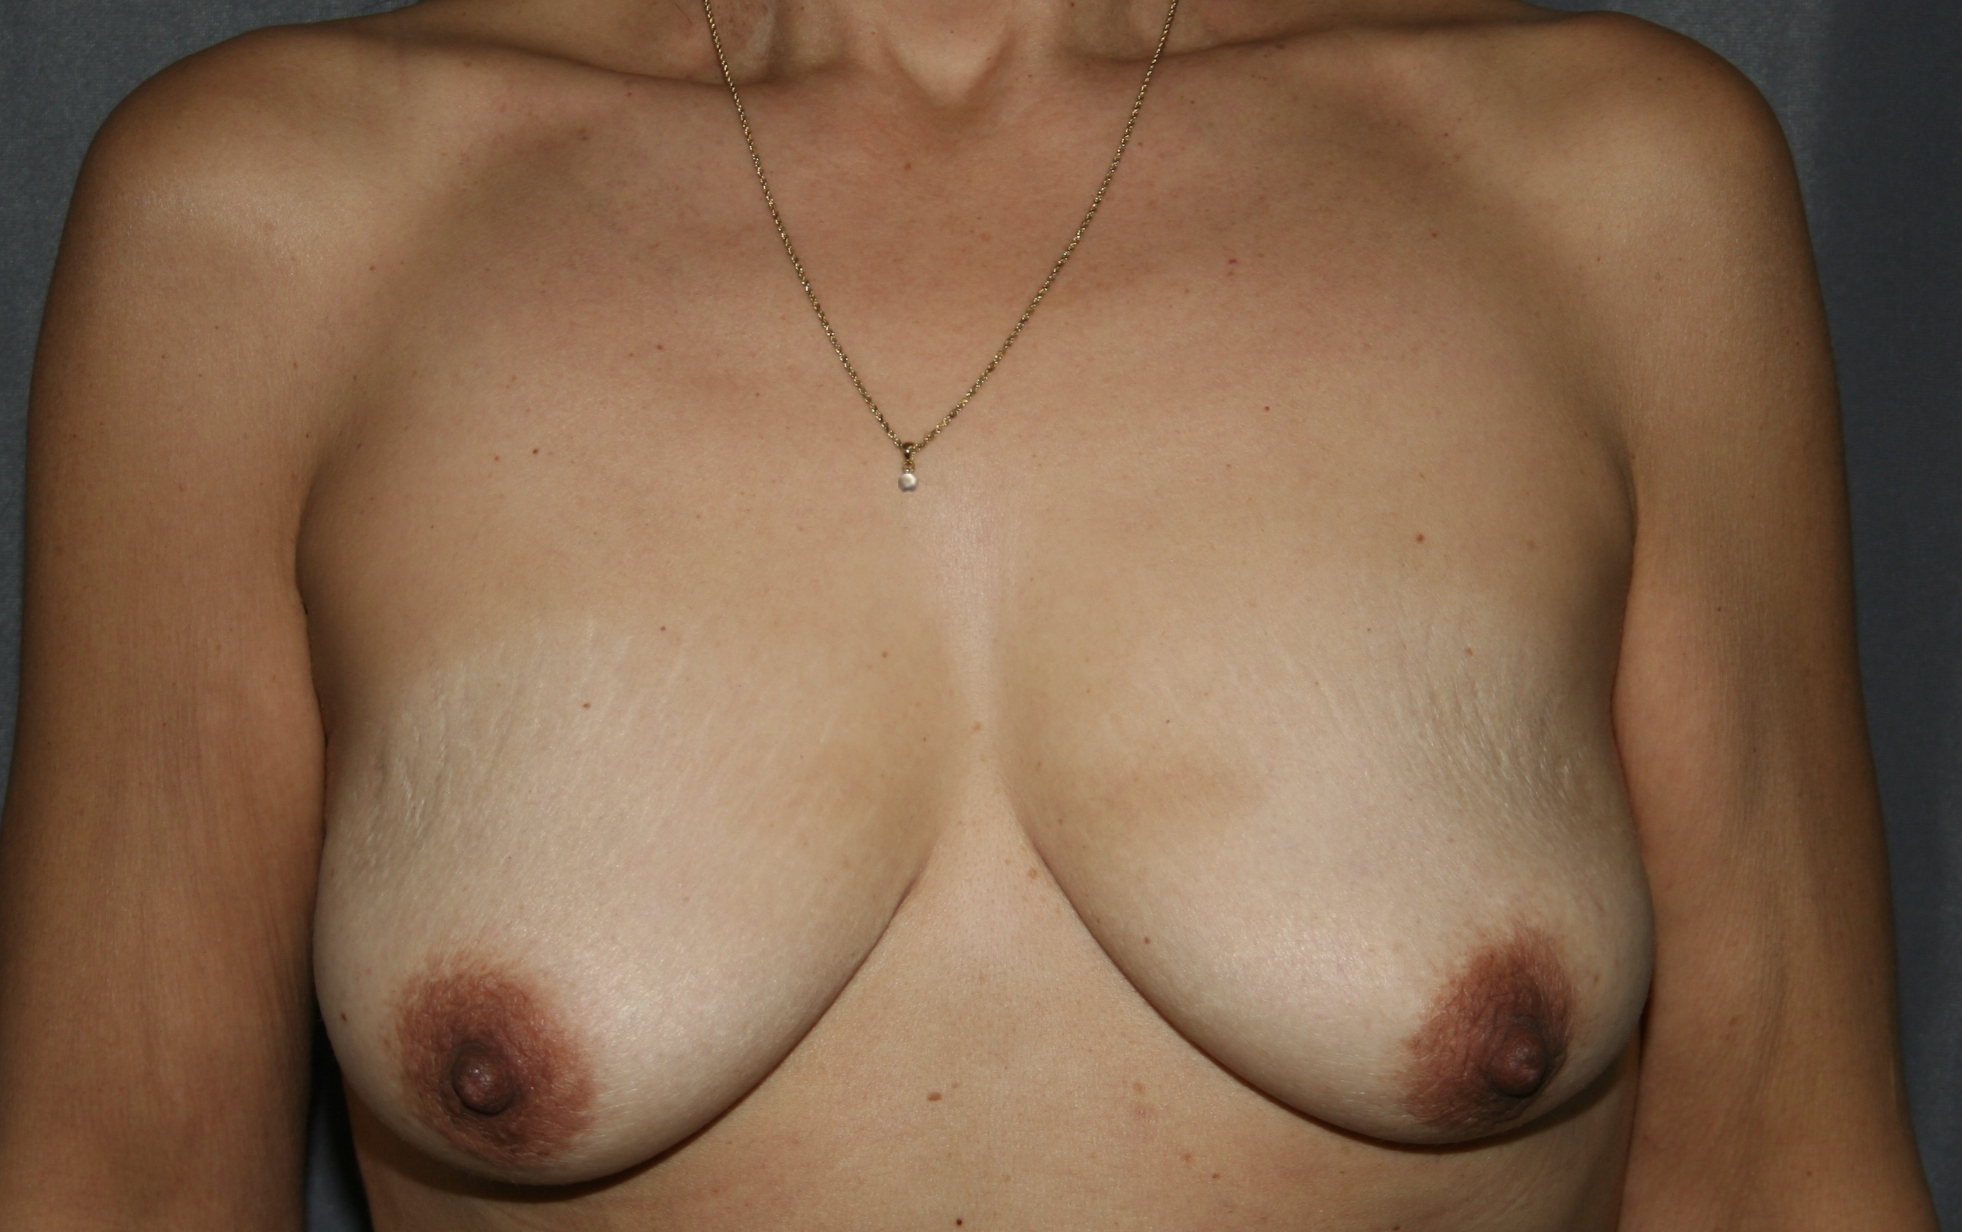 Before breast augmentation and lift. Note the asymmetry in the breast mound and the nipple areola complex. The left size is larger and lower.